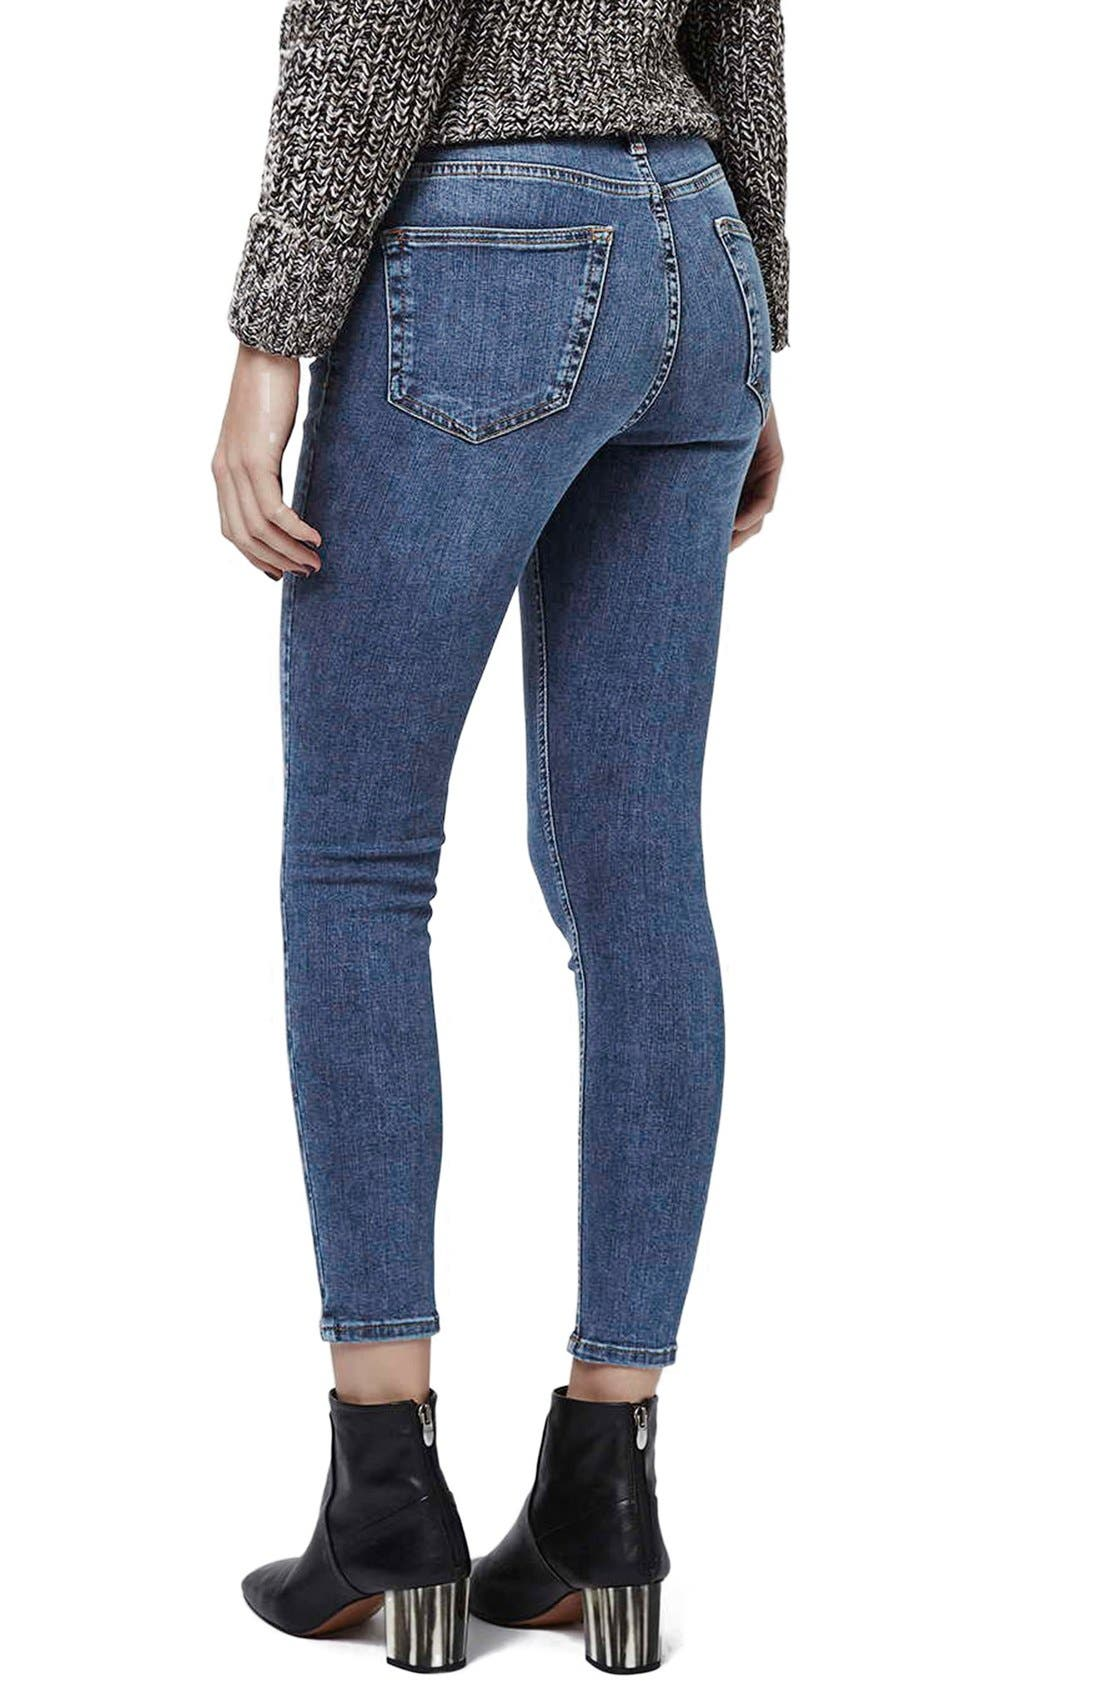 TOPSHOP, 'Jamie' High Rise Ankle Skinny Jeans, Alternate thumbnail 8, color, MID DENIM